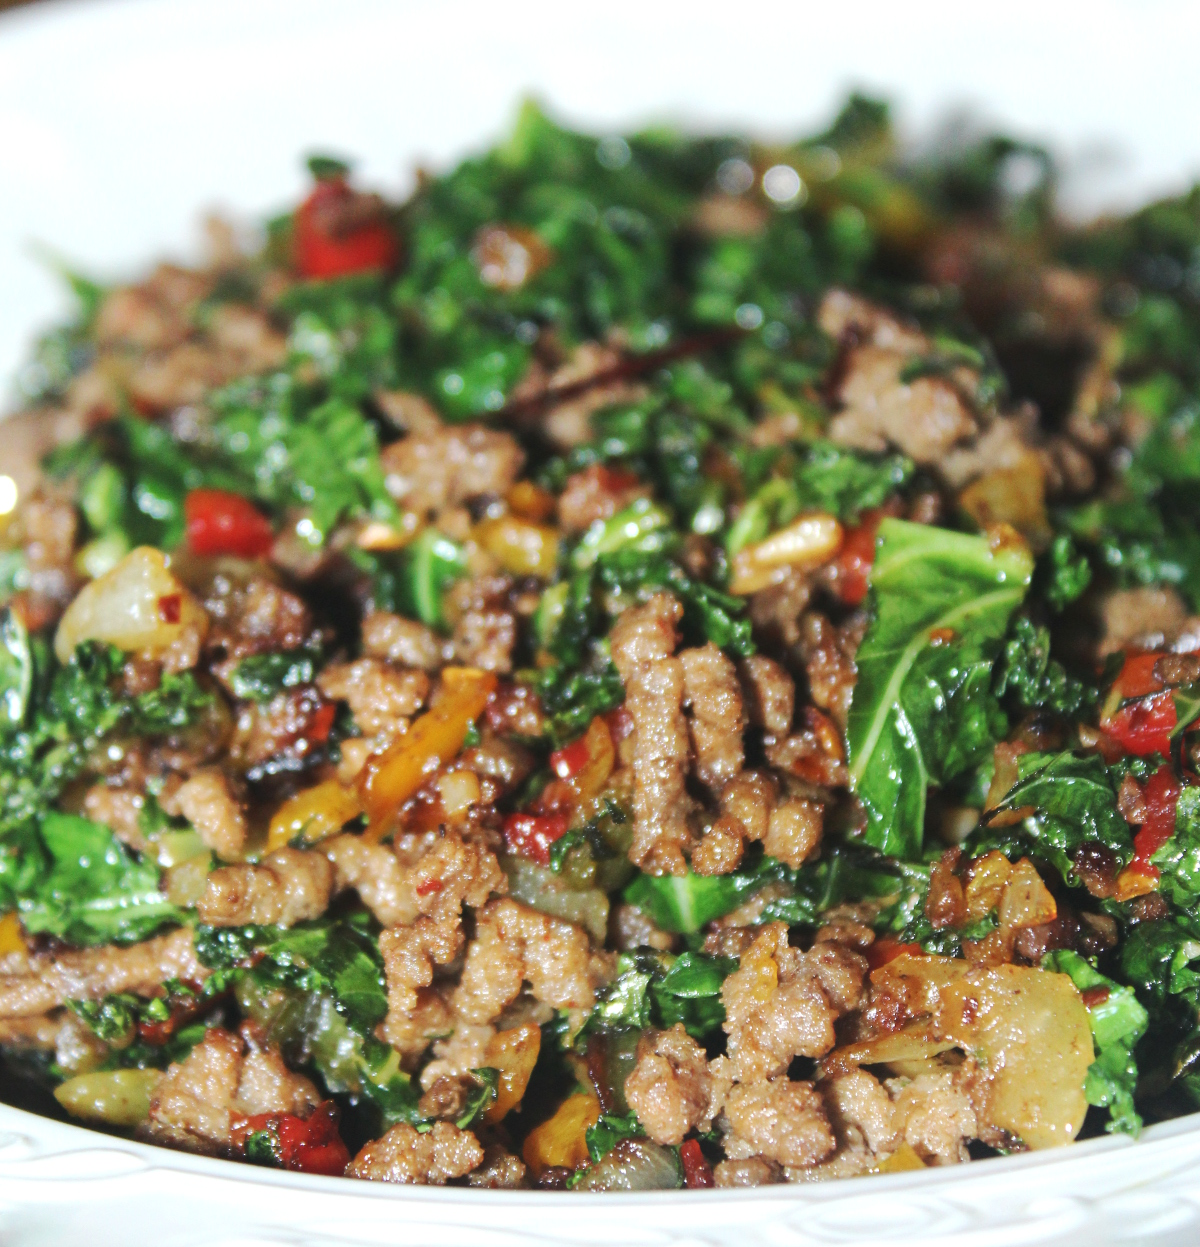 Ground Beef Recopes: Sauteed Ground Beef And Kale